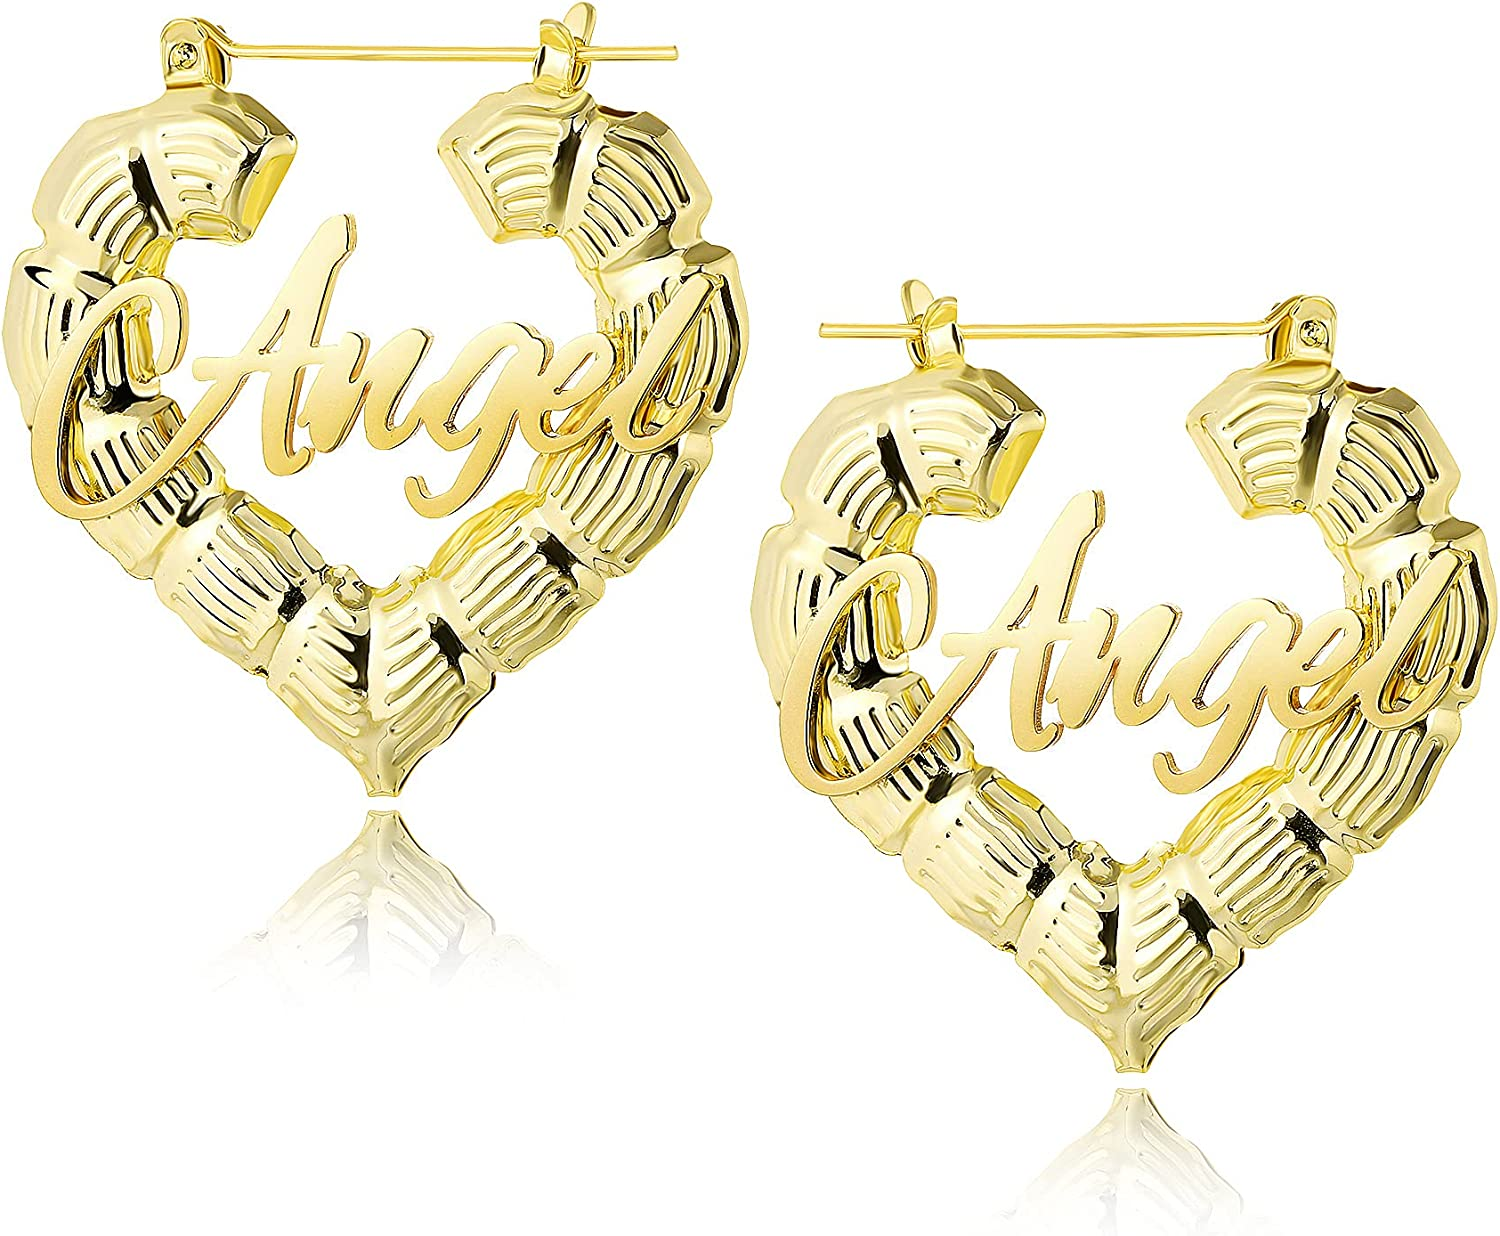 BUREI Personalized Gold Name Hoop Earrings for Women Teen Girls Christmas Halloween Thanksgiving Day 14K Gold Plated Big Bamboo Earrings Fashion Custom Jewelry Unique Gifts